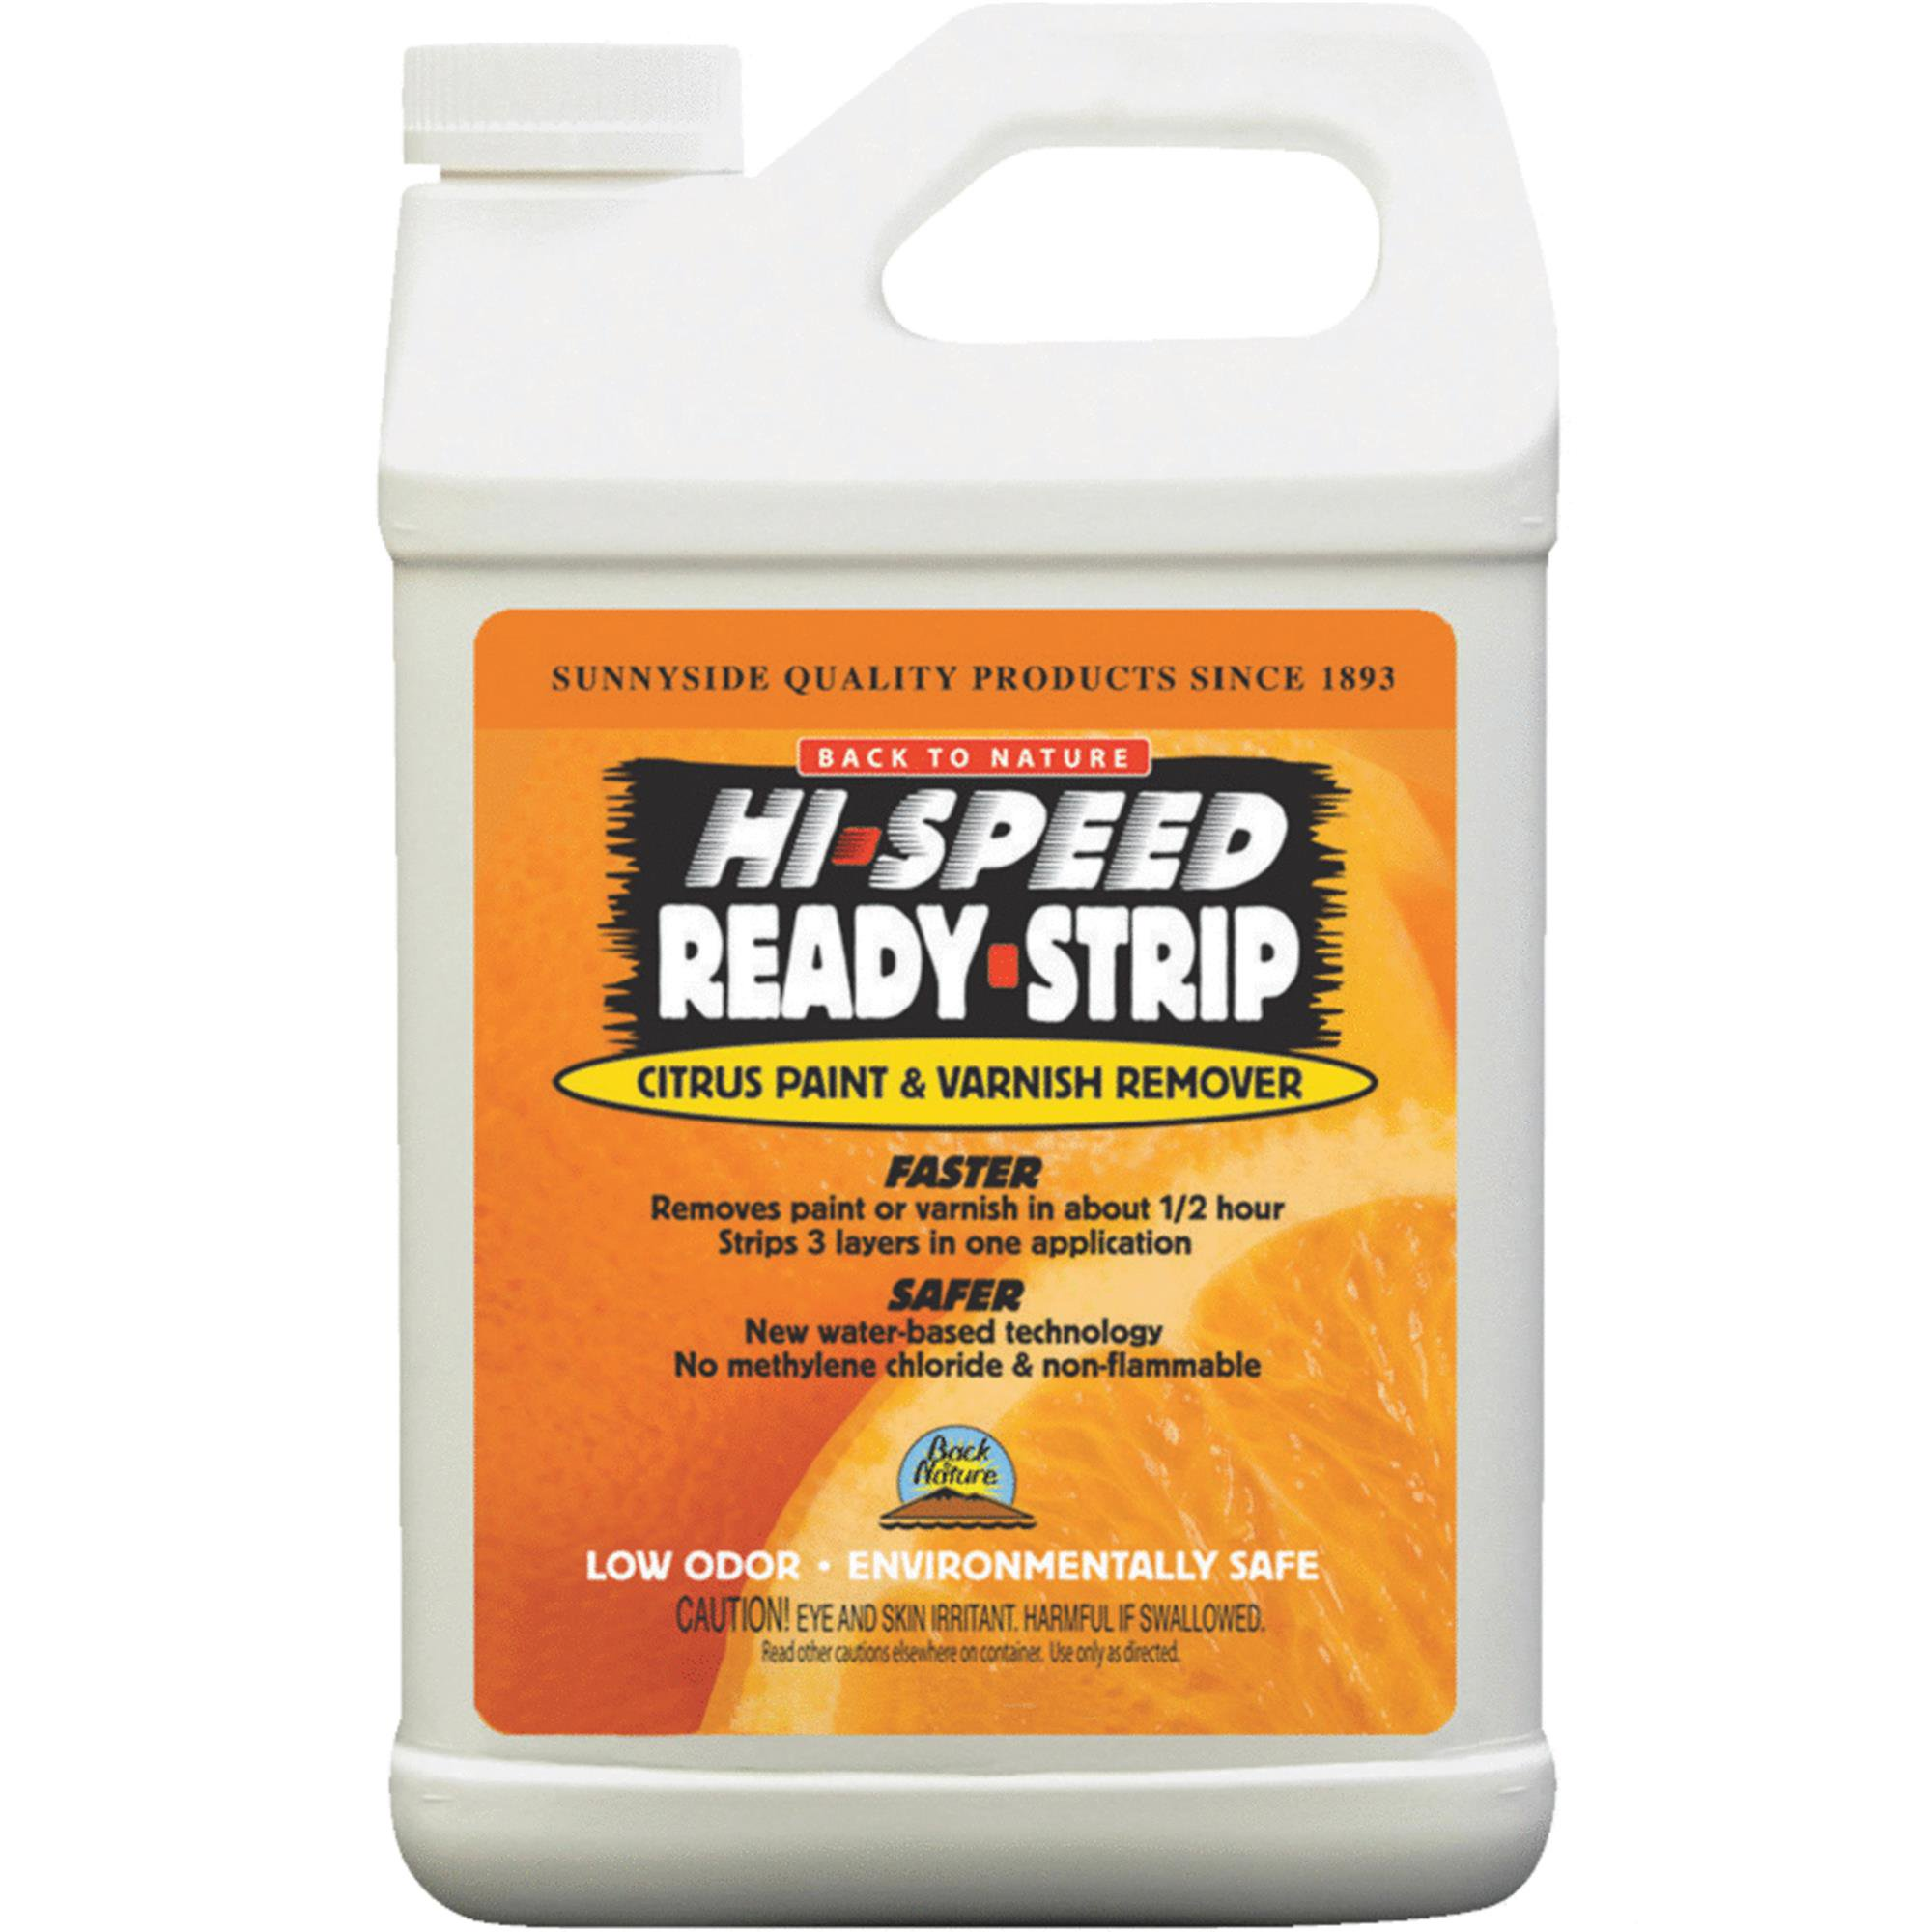 Back to Nature Hi-Speed Ready-Strip Paint & Varnish Stripper by SUNNYSIDE CORPORATION